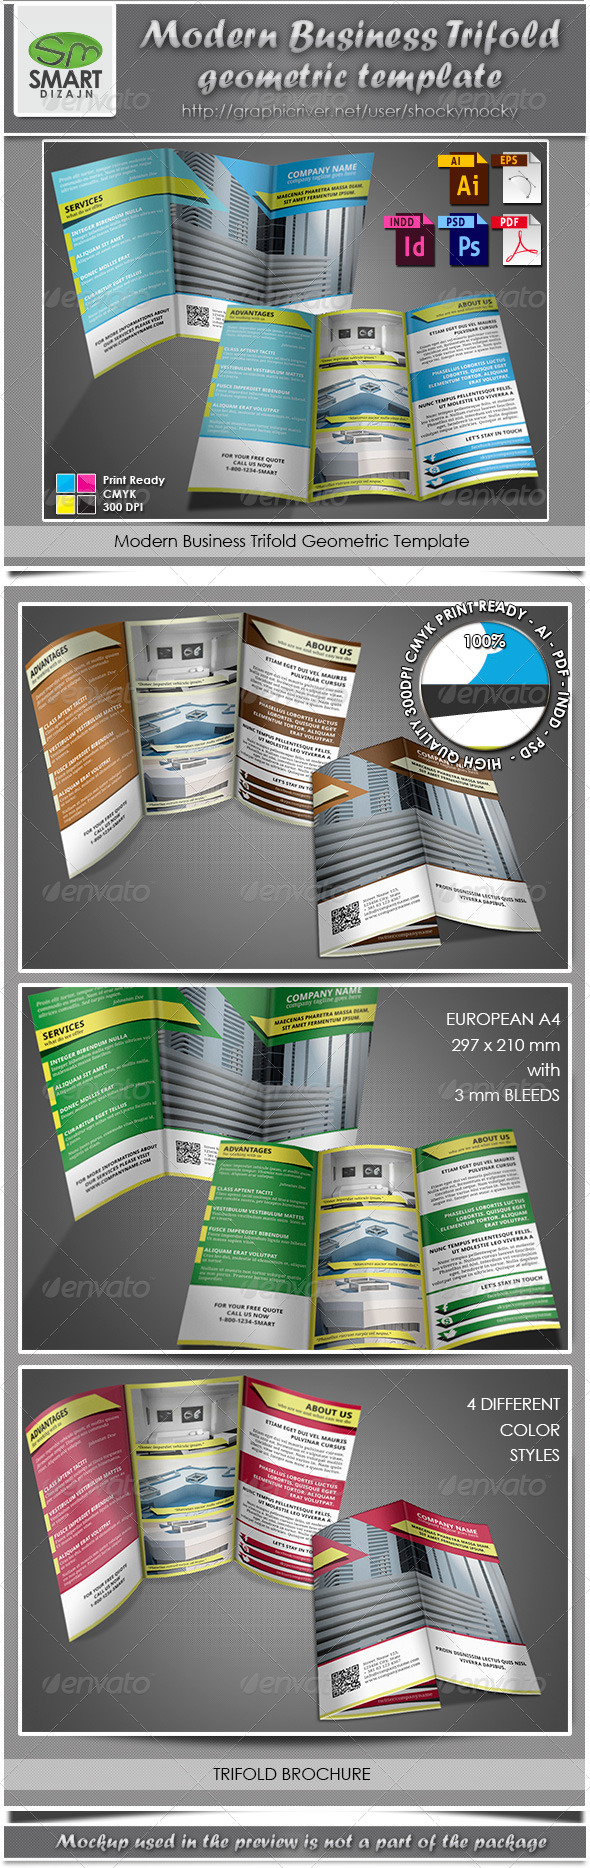 GraphicRiver Modern Business Trifold Geometric Template 3854209